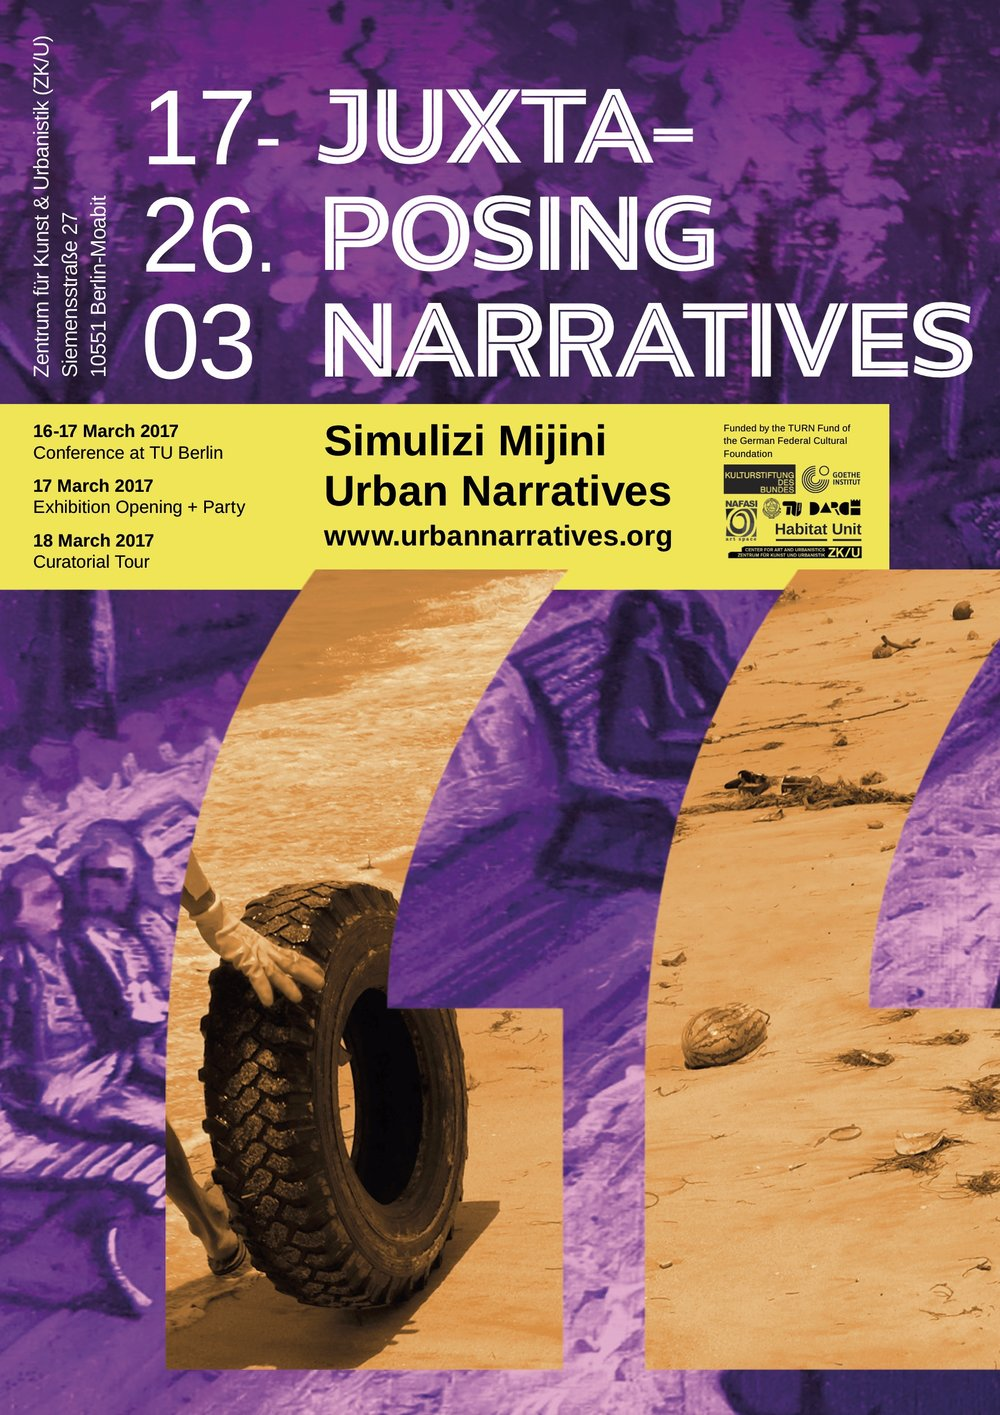 Programme_Juxtaposing Narratives exhibition.jpg